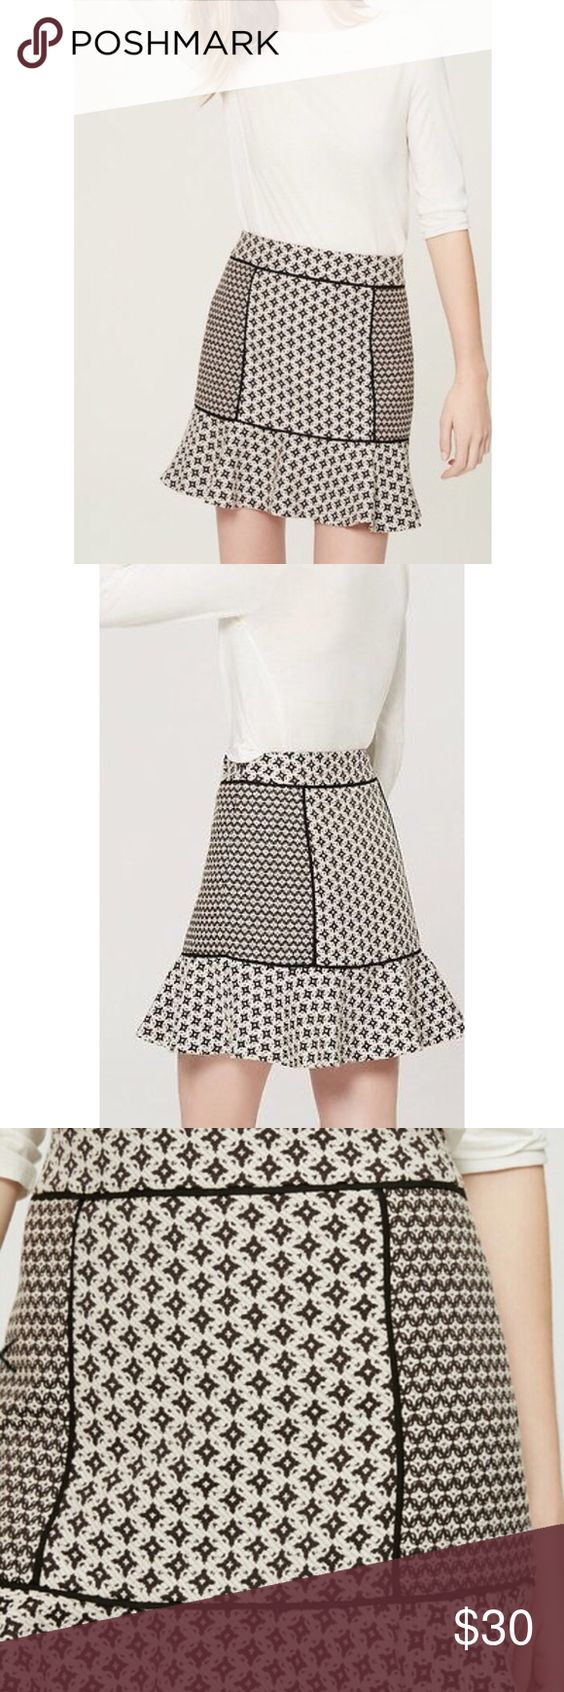 LOFT Jacquard Flippy Skirt NWOT Mixed monochrome patterns meet on this femme flare, and the results are modern in the sweetest way. Raised-seam paneling. Side zip. Flared hem. Lined. Brand new without tags. LOFT Skirts